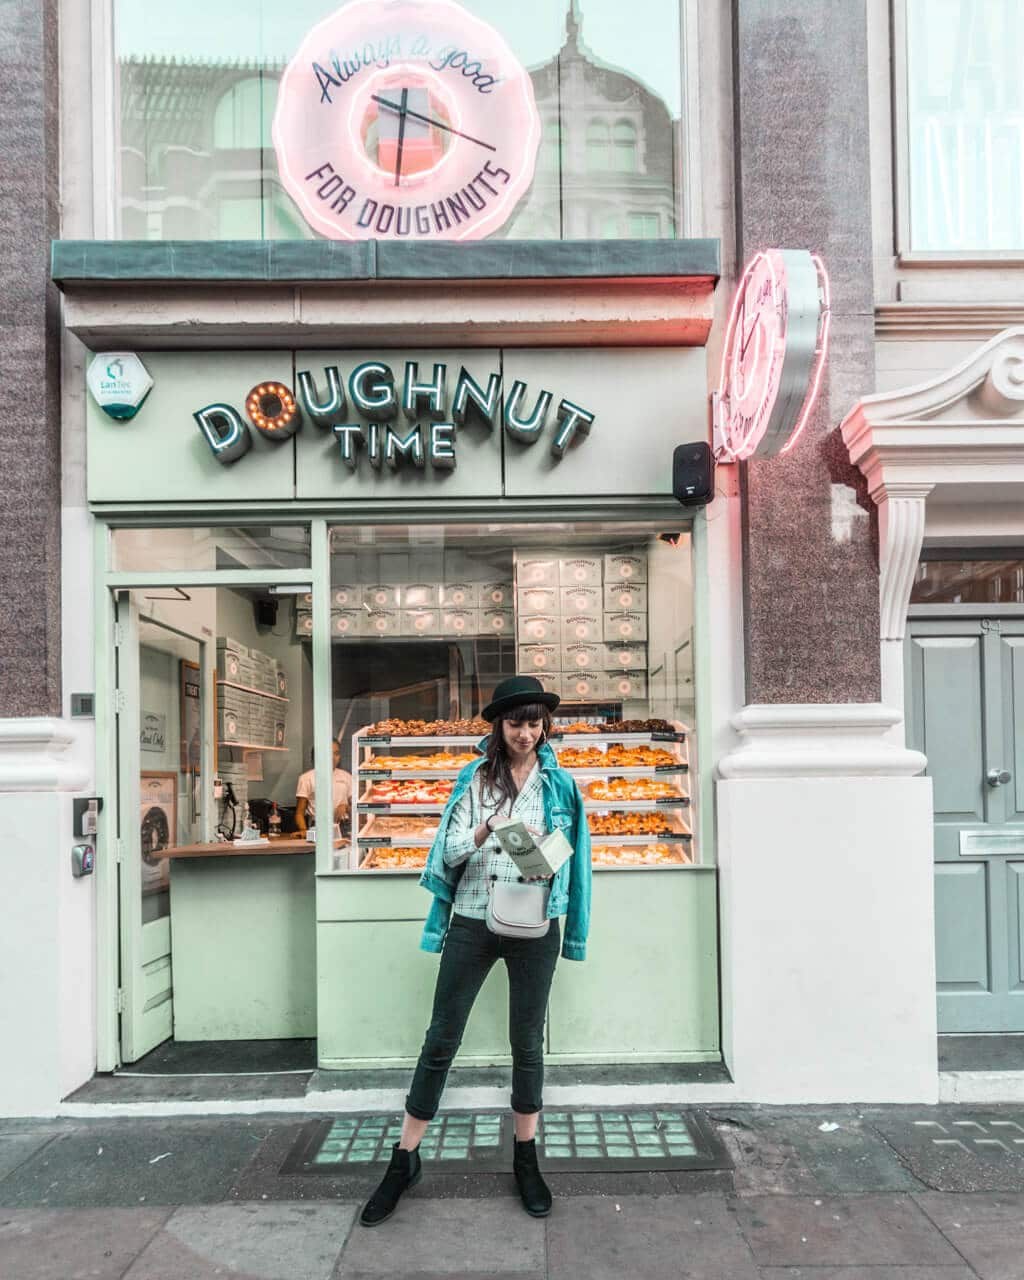 London food guide - my recommendations for restaurants and street food in the capital of England. | DOUGHNUT TIME